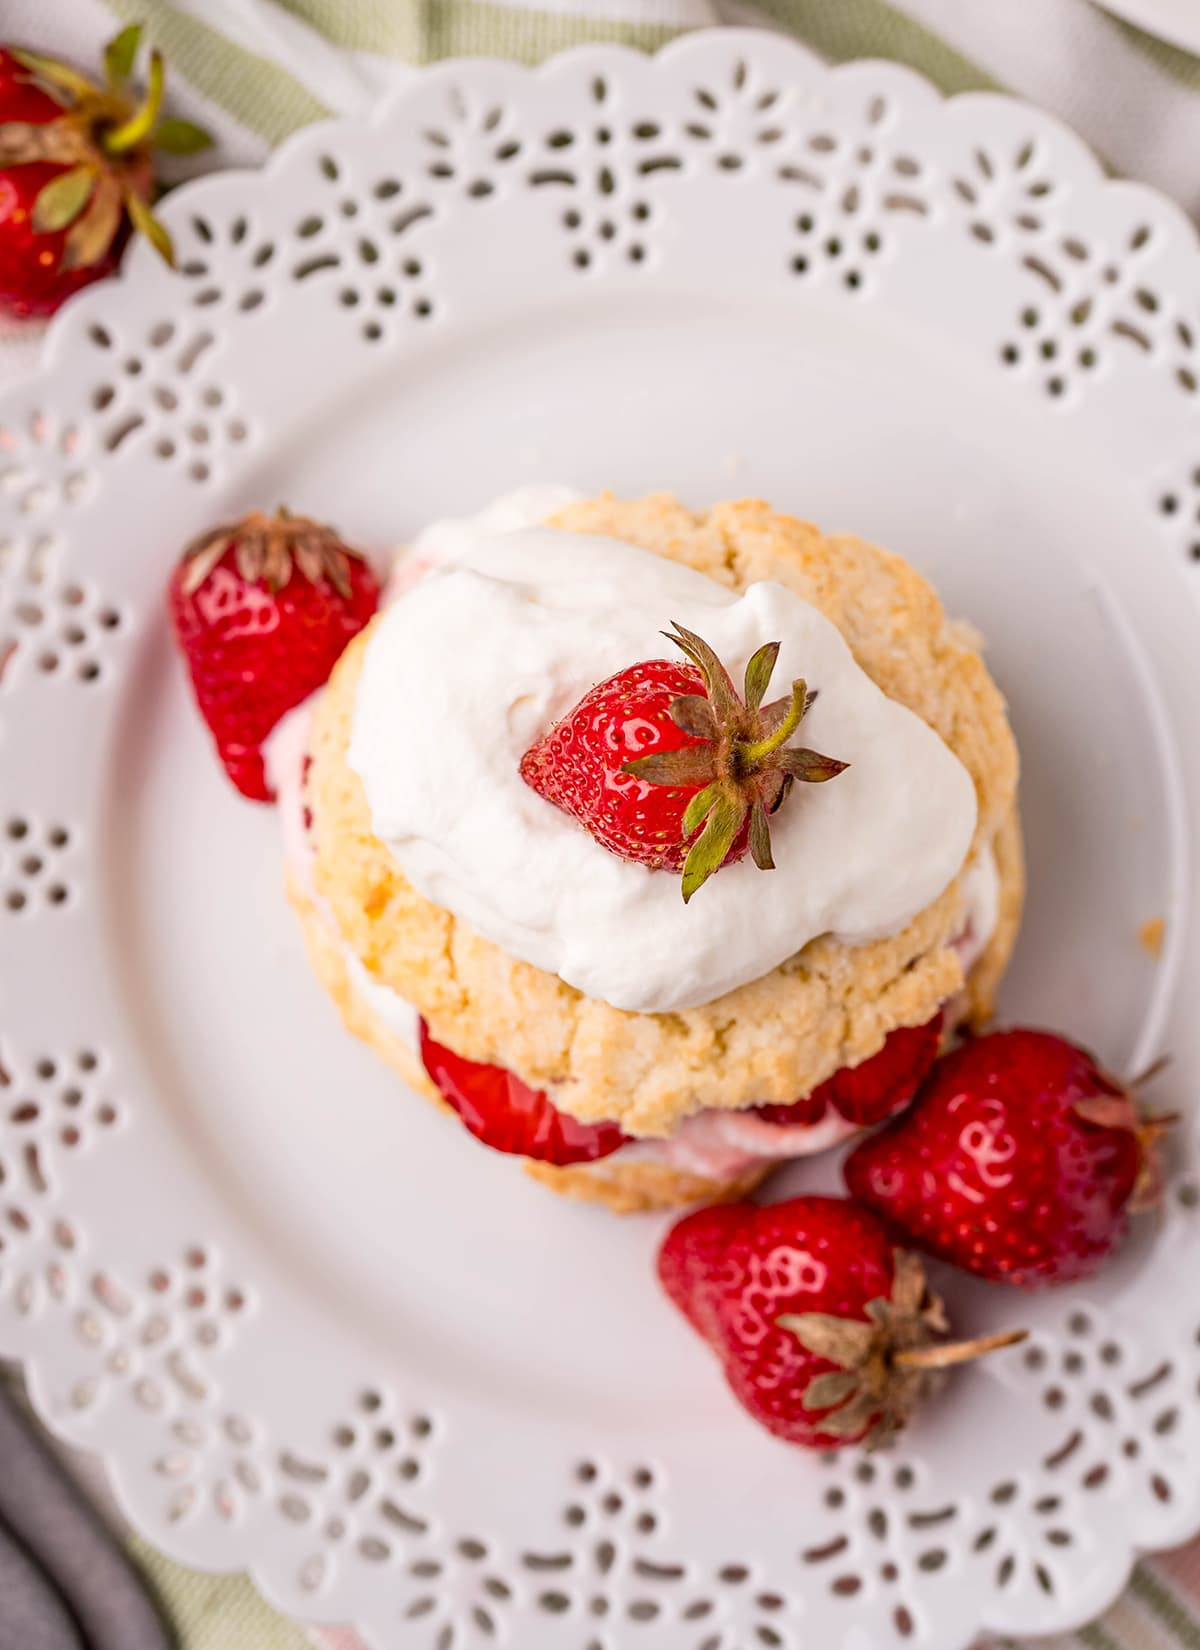 An overhead shot of a strawberry shortcake on a plate.